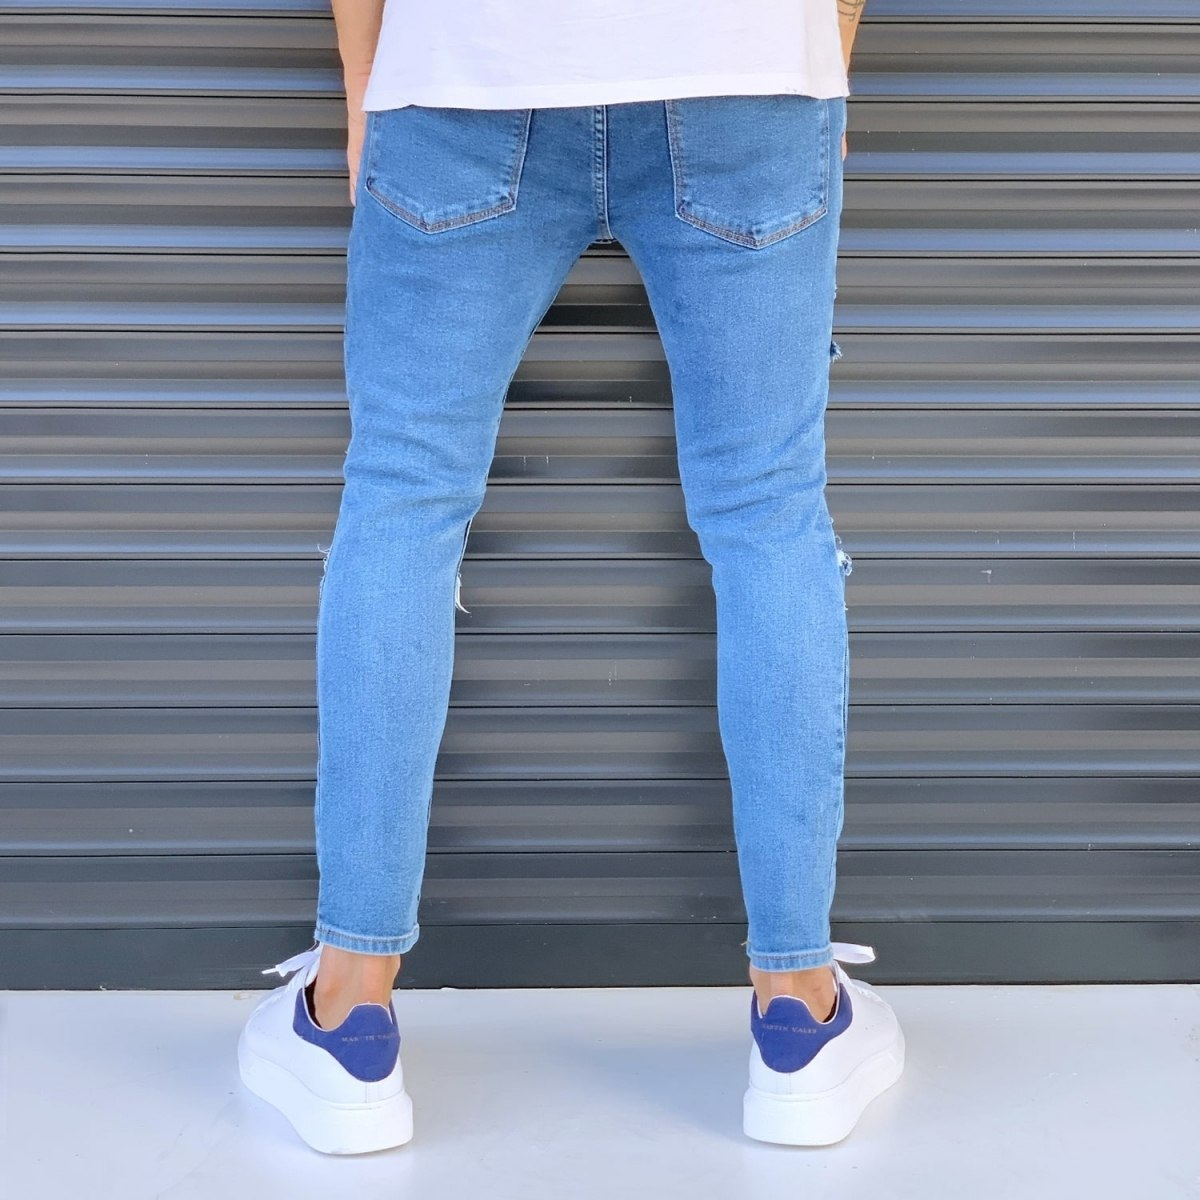 Men's Street Jeans With Rips And Patchworks Blue Mv Premium Brand - 3